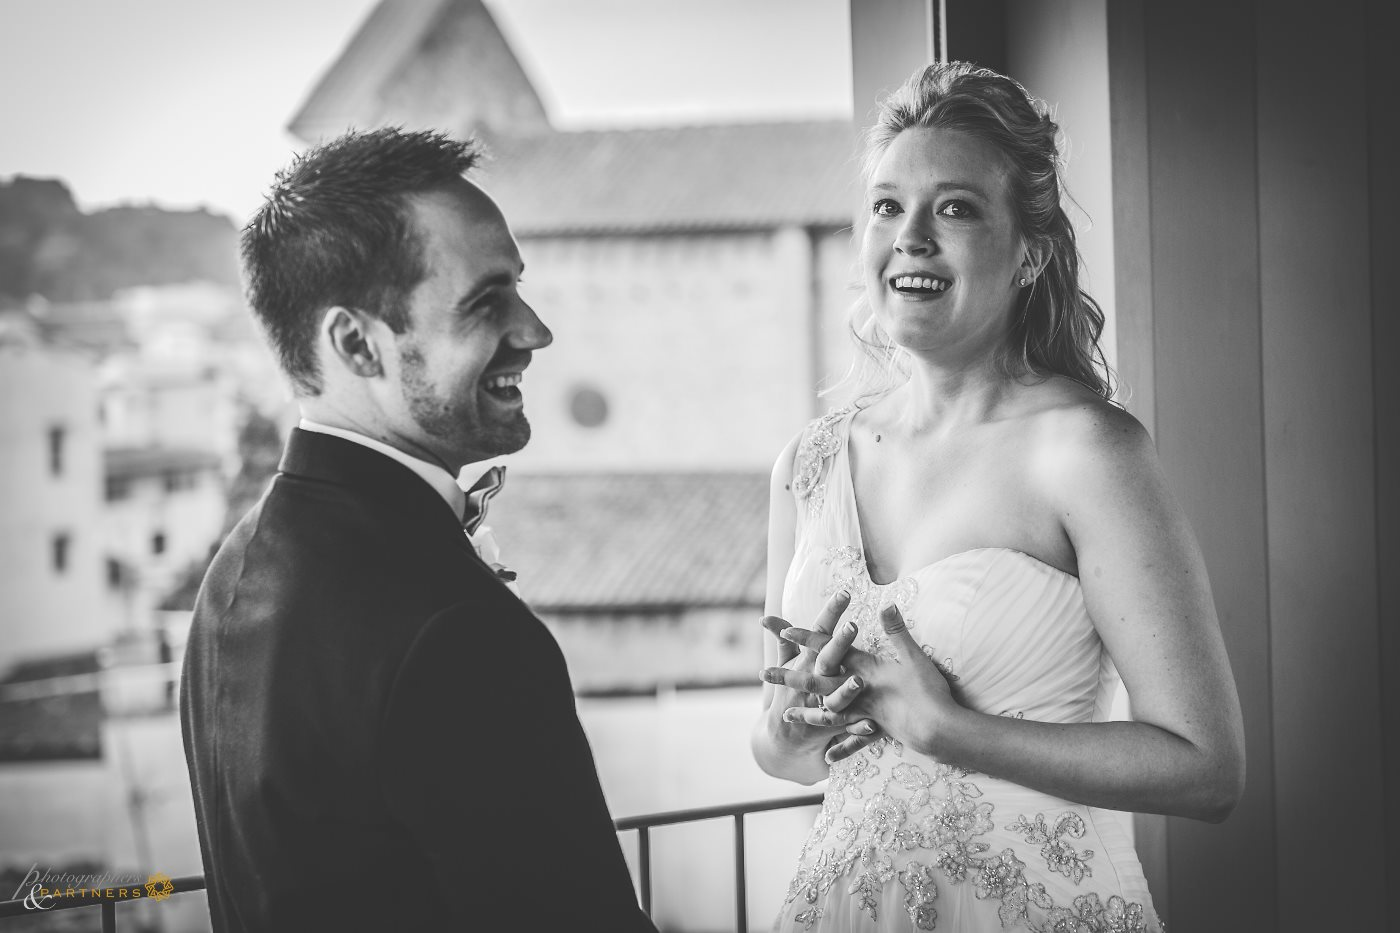 wedding_photographer_florence_08.jpg